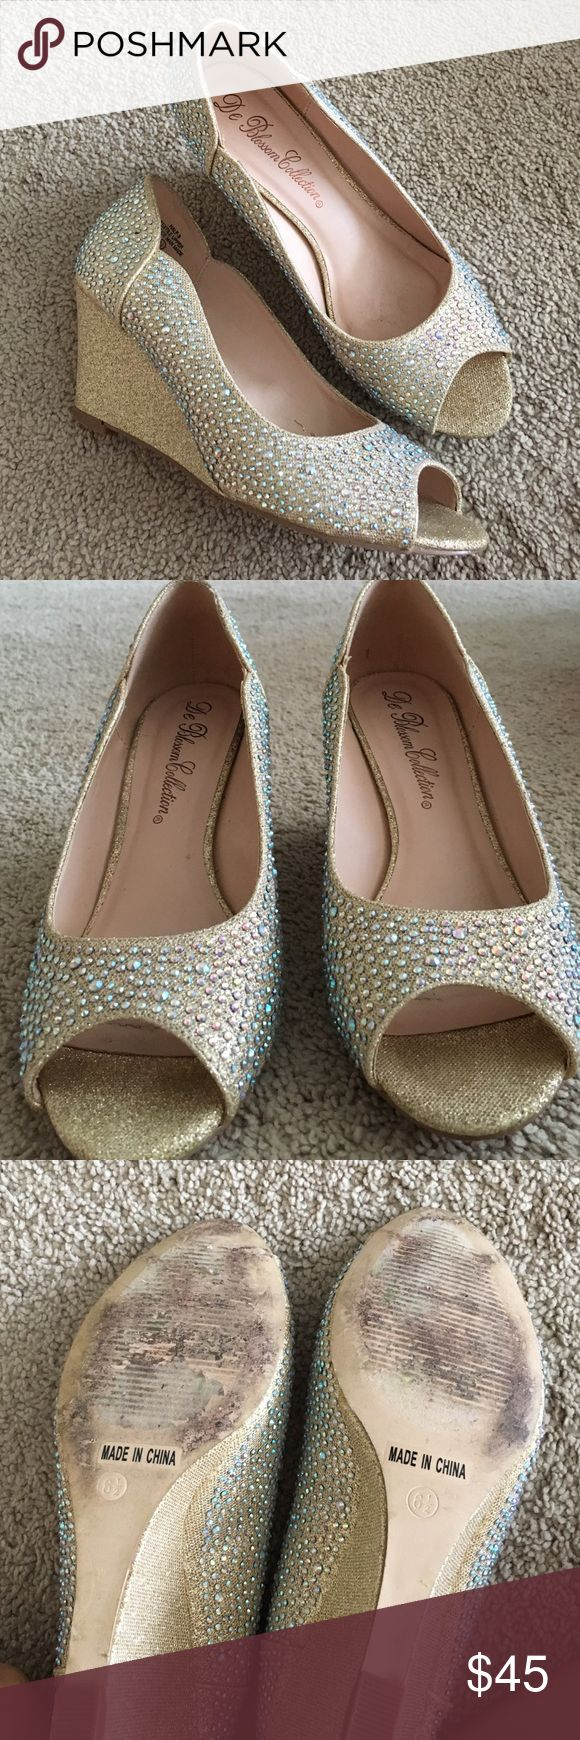 Gold sparkly wedge heels DSW Shoes - Size 6.5 gold sparkly wedge heels, only worn once for a few hours. Still in great condition. Comes with original box DSW Shoes Heels